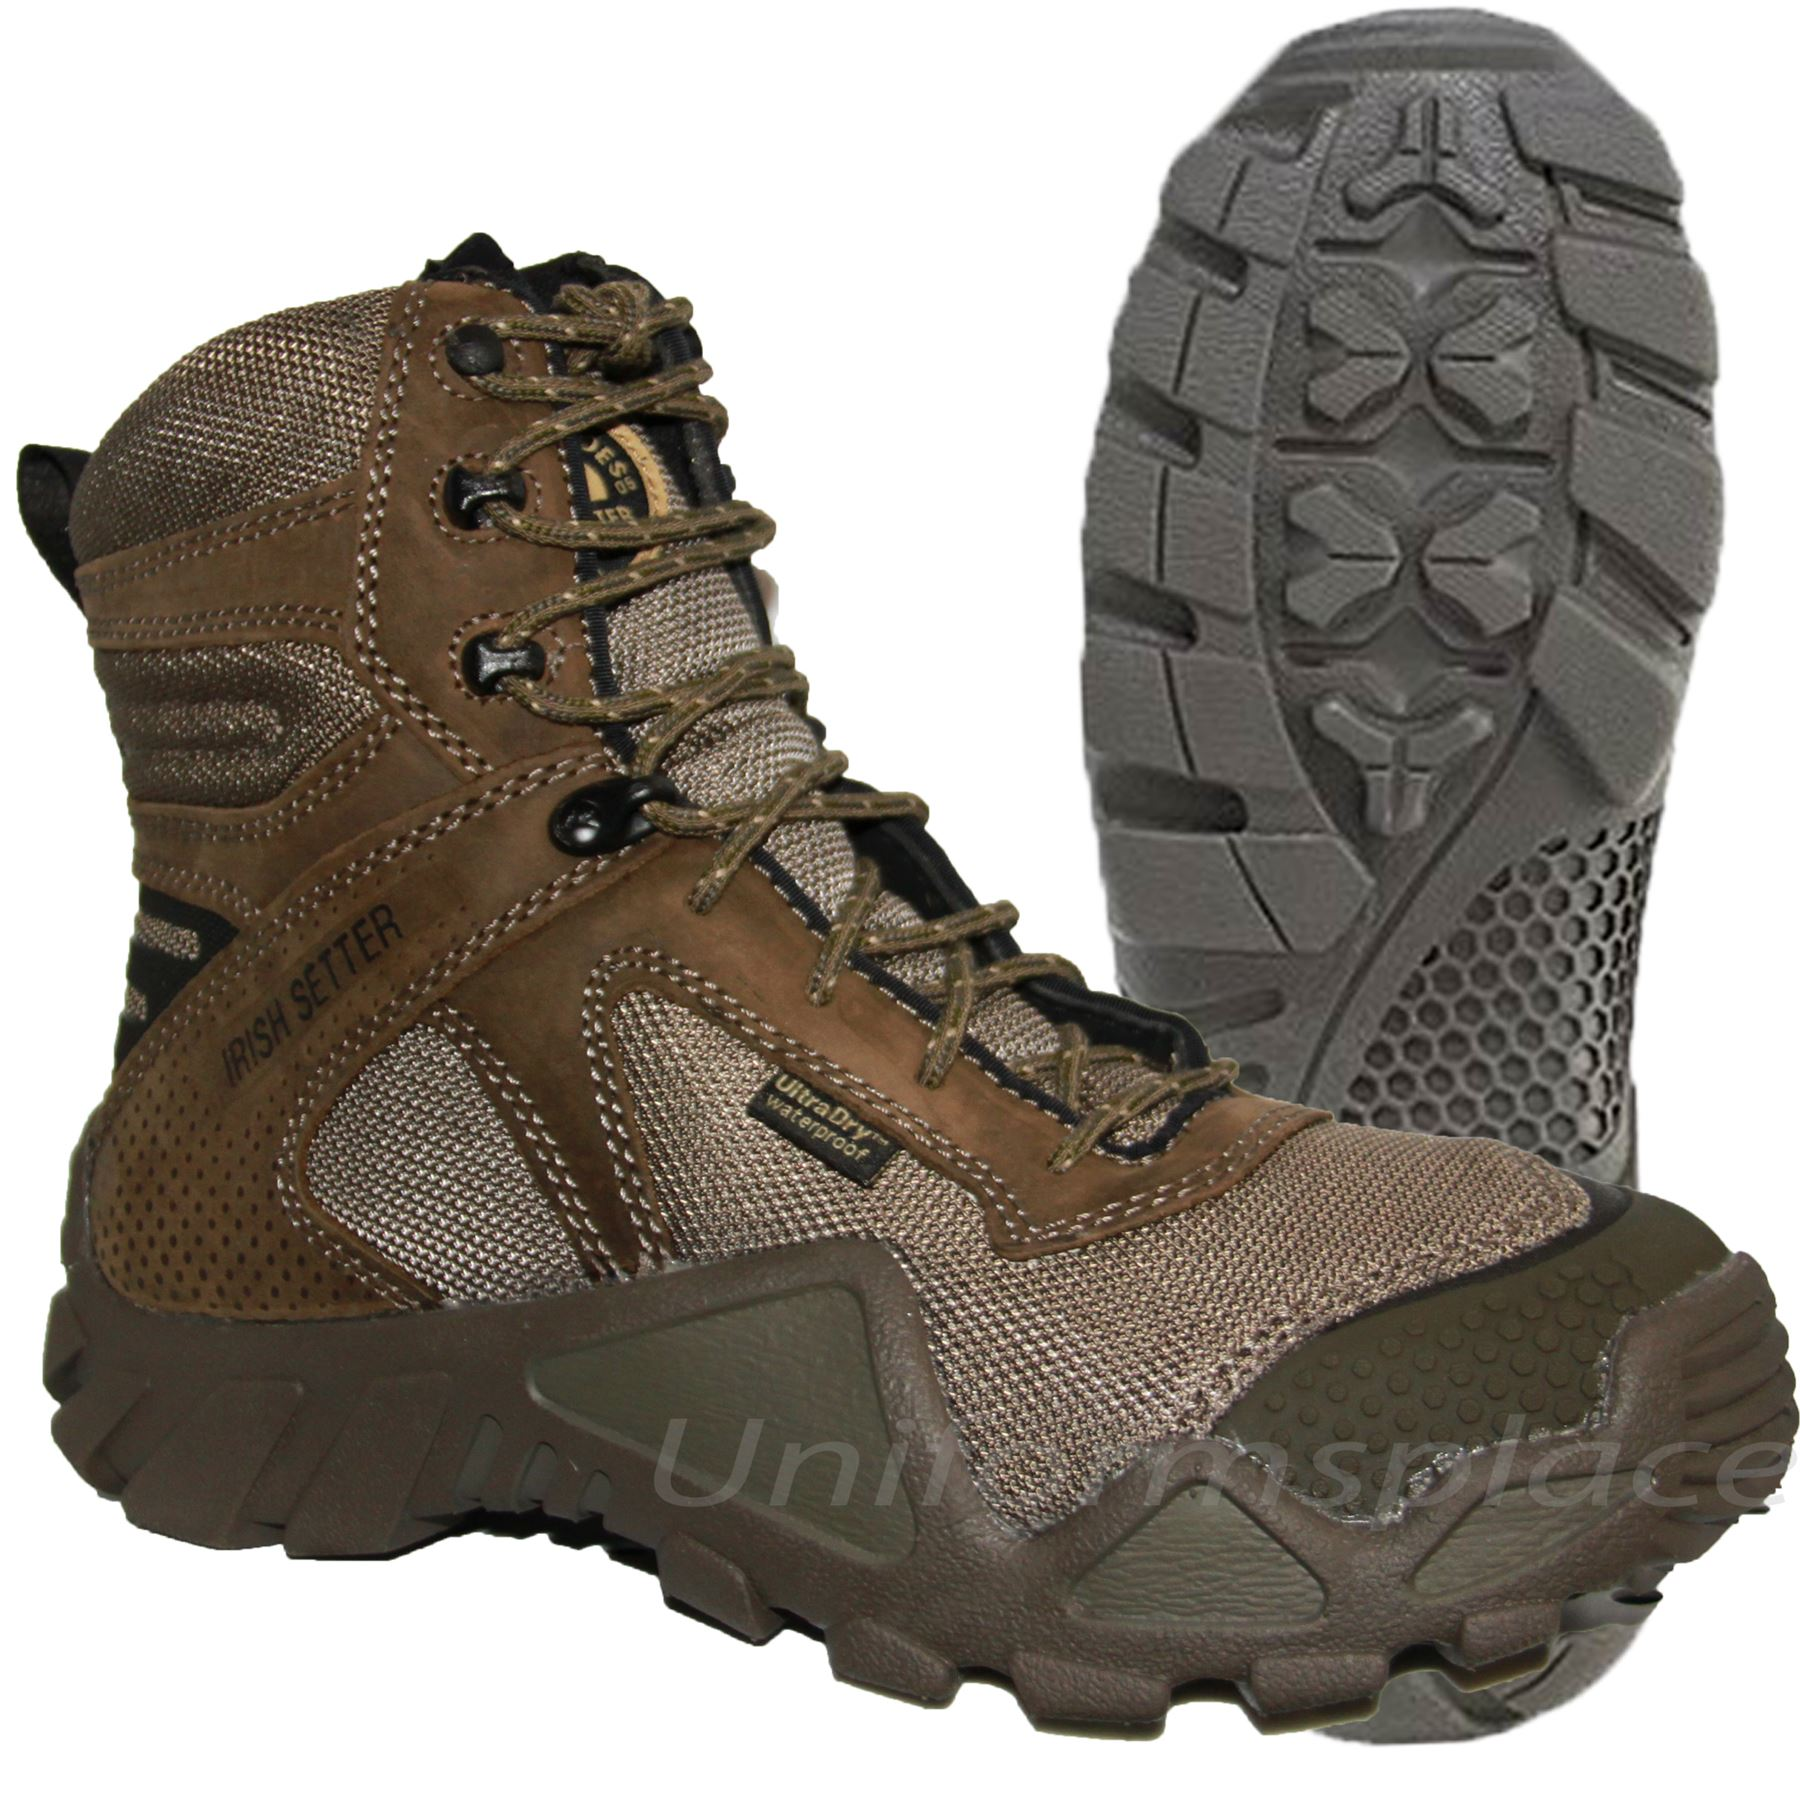 f1ccec64b4a8 Irish Setter by Red Wings Boots Mens Vaprtrek 8 Waterproof ...